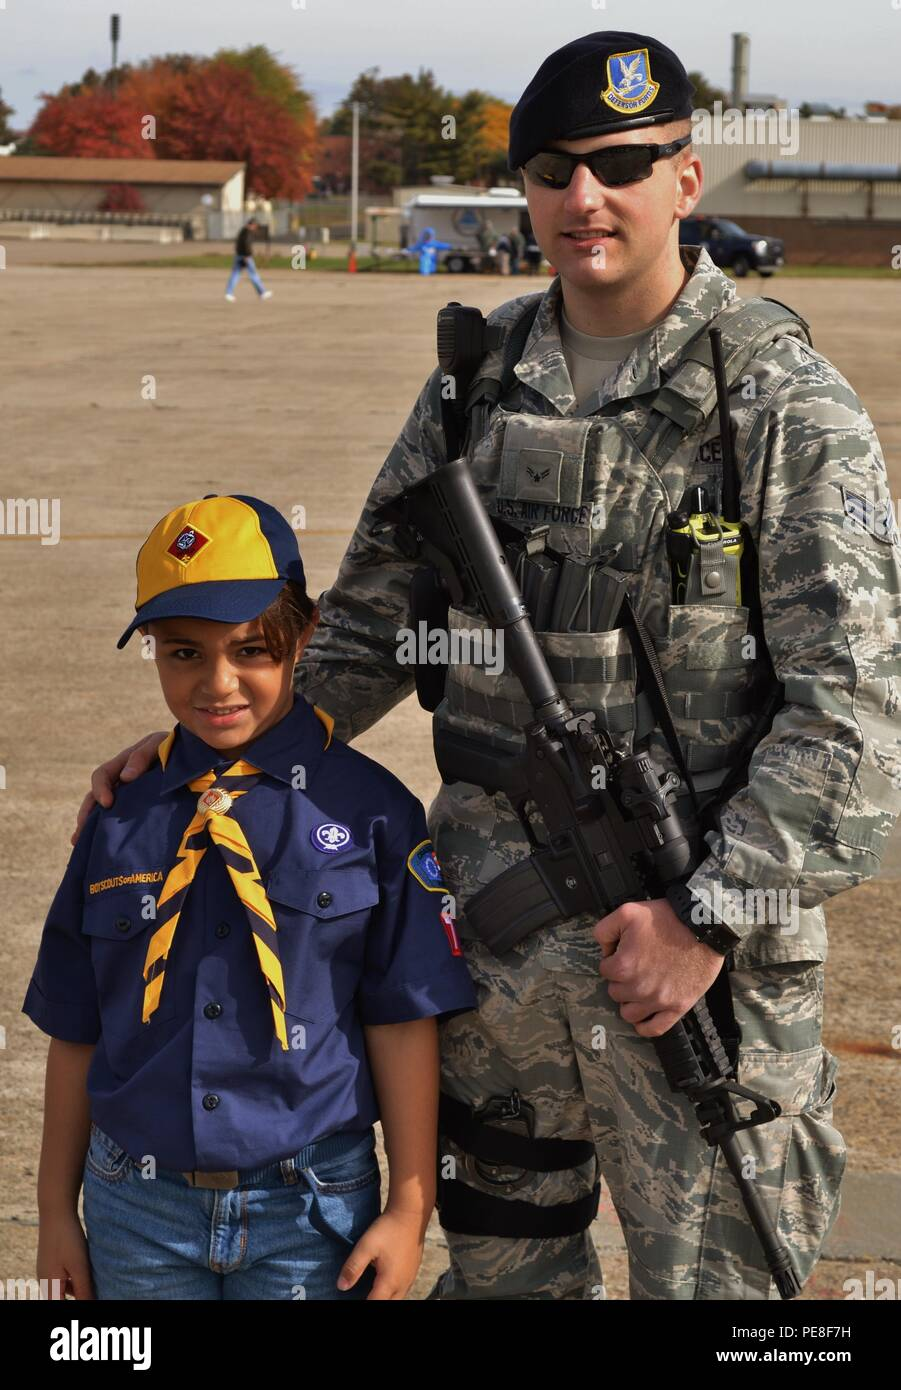 """Giovanni Dilalogue, a Wolf Scout from Troop 72, part of the Cradle of Liberty Council, Boy Scouts of America, stands for a photo with 111th Security Forces member Airman 1st Class Timothy Rihl during the """"Rocket Into Scouting"""" recruiting event hosted by the 111th Attack Wing, Oct. 24, 2015, at Horsham Air Guard Station, Pa. The wing hosted more than 700 Scouts and their families, supplying food and entertainment, along with the chance for some Scouts to earn their Aviation Merit Badge. (U.S. Air National Guard photo by Senior Airman Michael Bolden/Released) - Stock Image"""